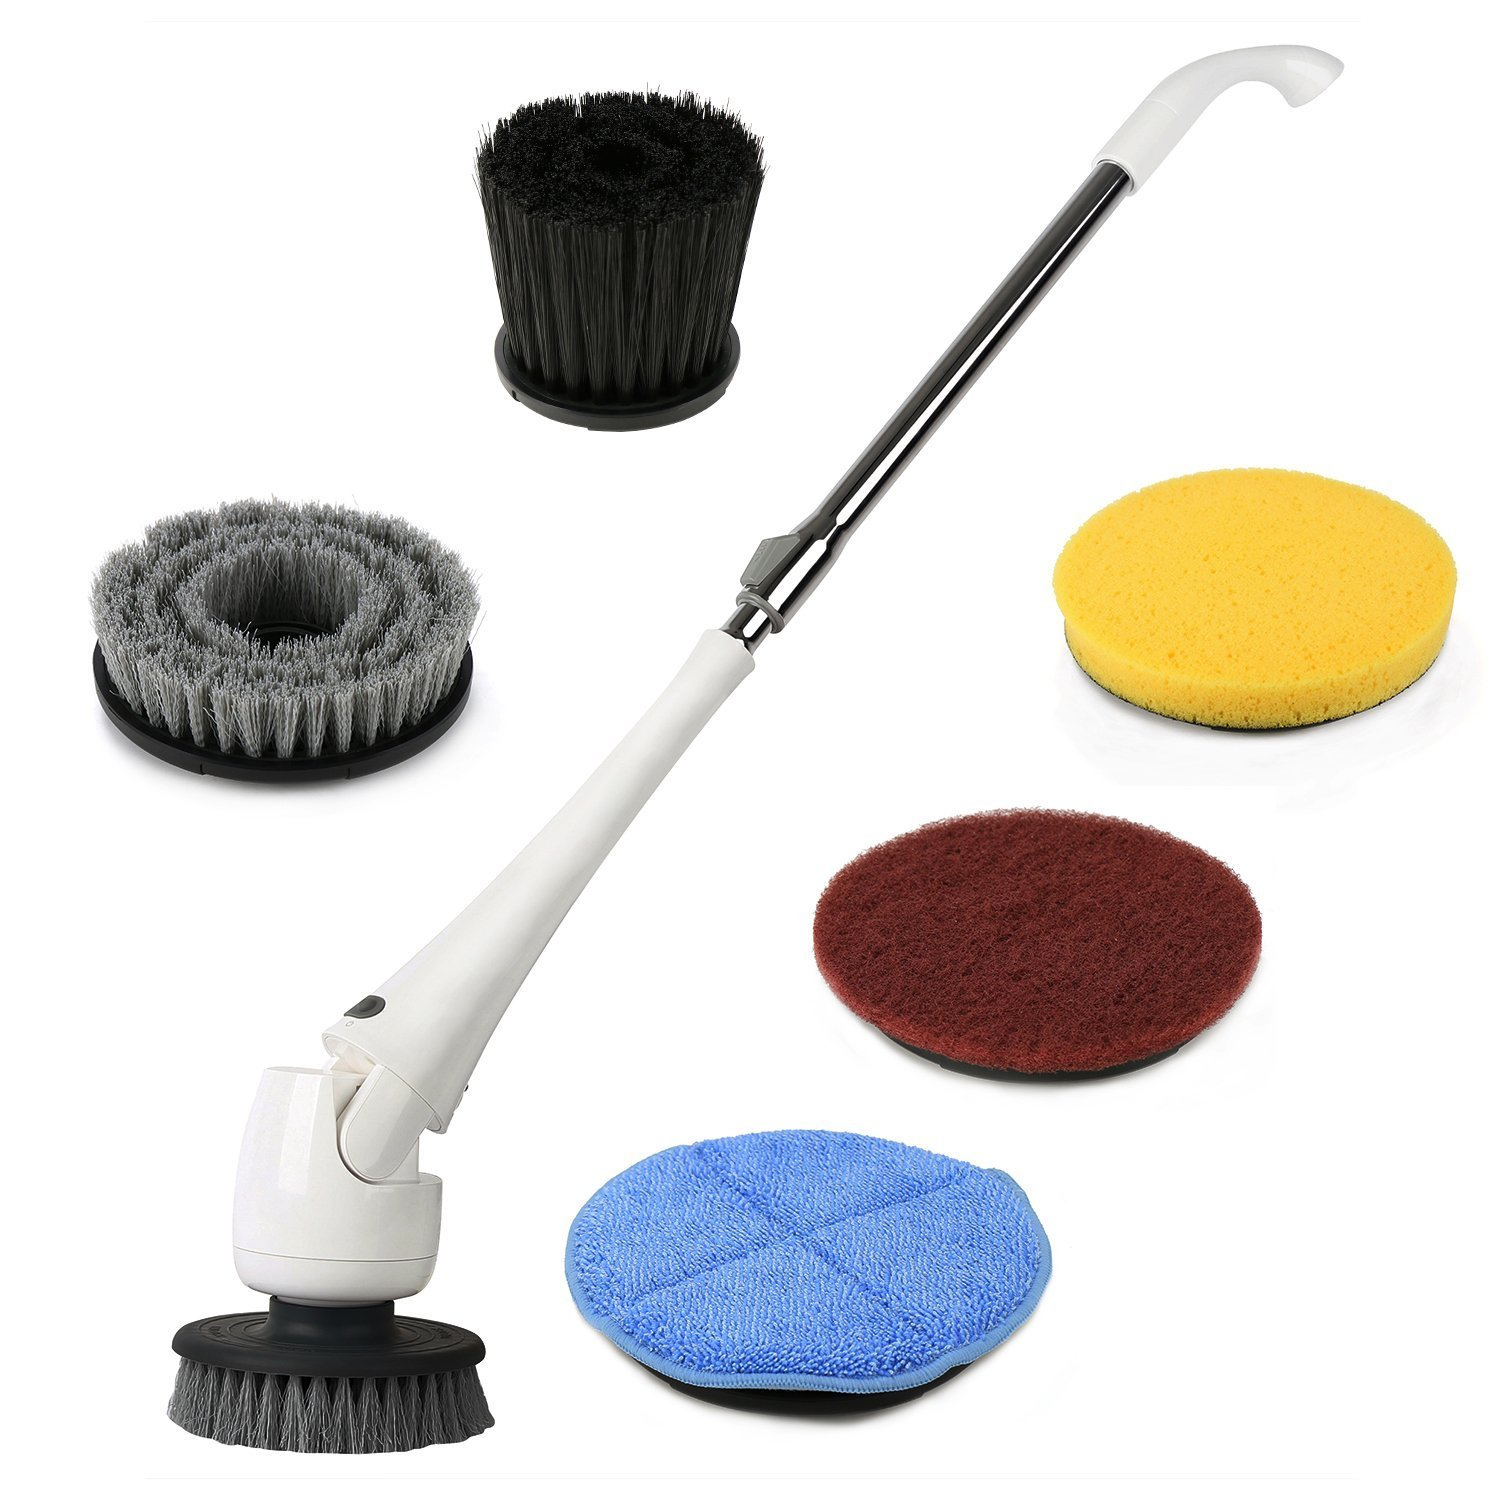 Cordless Electric Power Spin Scrubber, EVERTOP Power Spin Scrubber Cleaning Brush with 5 Brush Heads, Extension Pole and Rechargeable Battery, for Bathroom, Floor, Tile, Wall, Shower, Bathtub